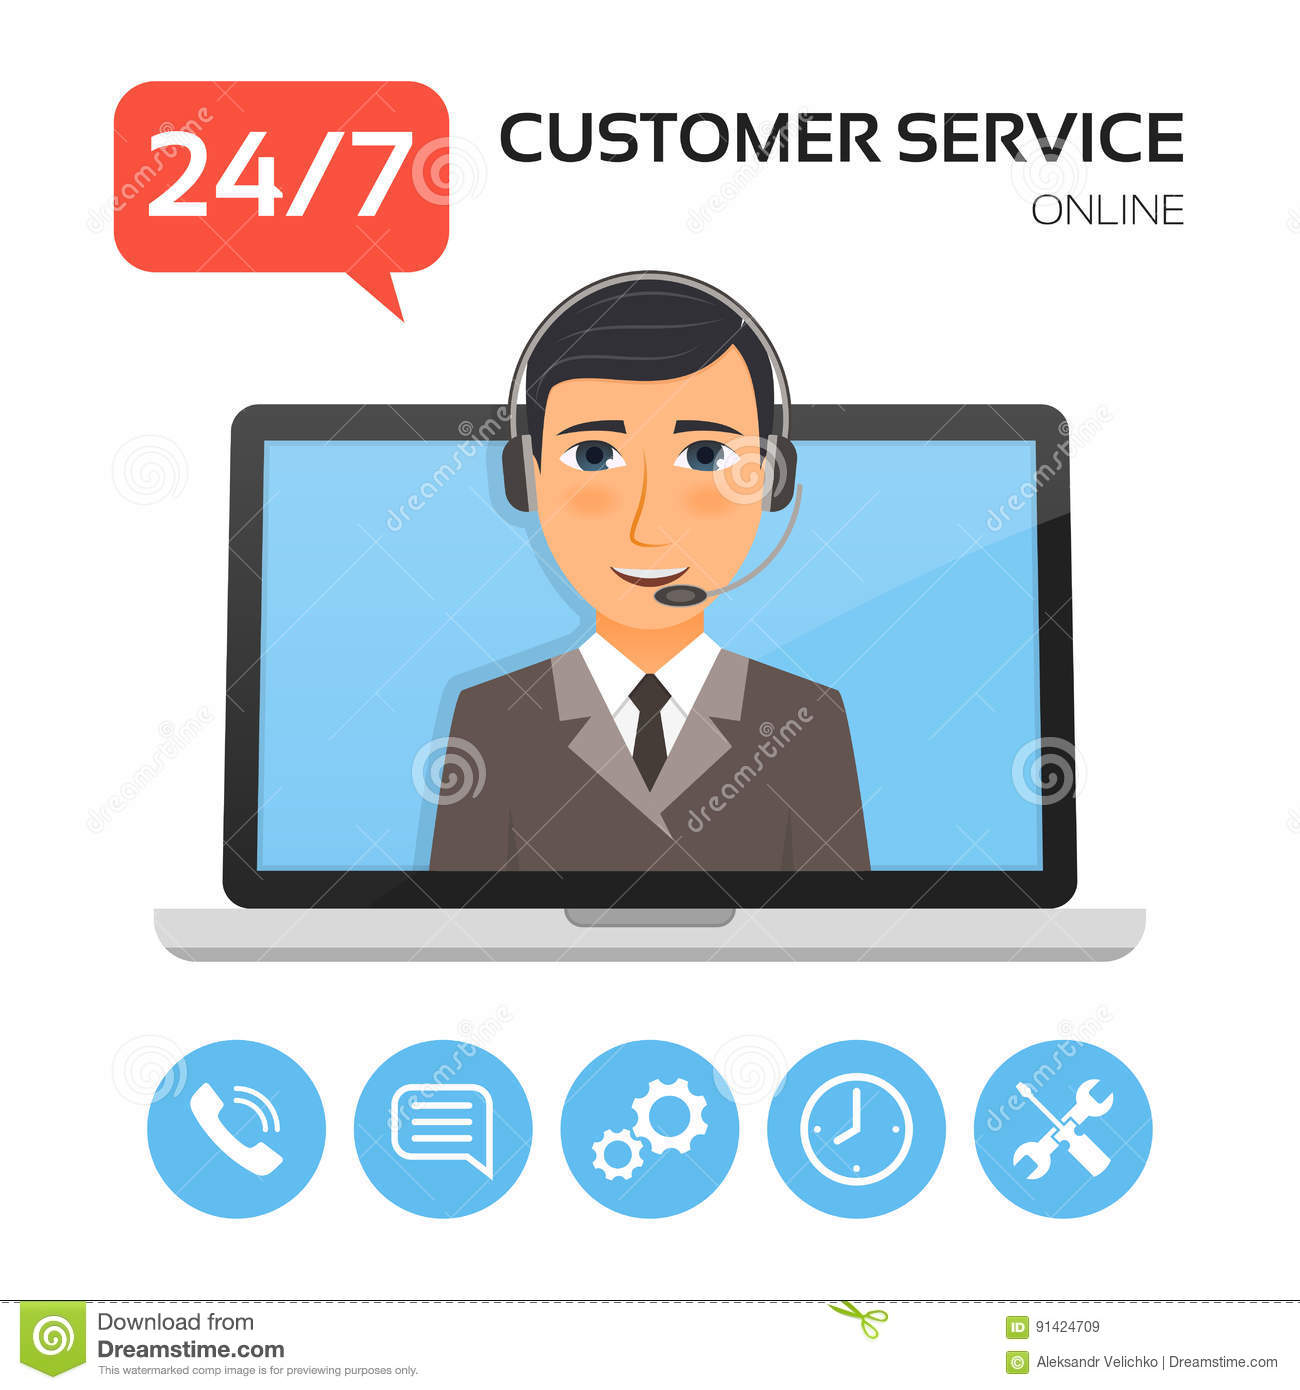 Customer Service And Technical Support Cartoon Vector. Sample Psw Resume. Latest Resume Sample. Resume Nanny Skills. Help Me Write My Resume. Sample Resume Administrative Coordinator. New Home Sales Resume Examples. Campaign Manager Resume. Sample High School Resume With No Work Experience